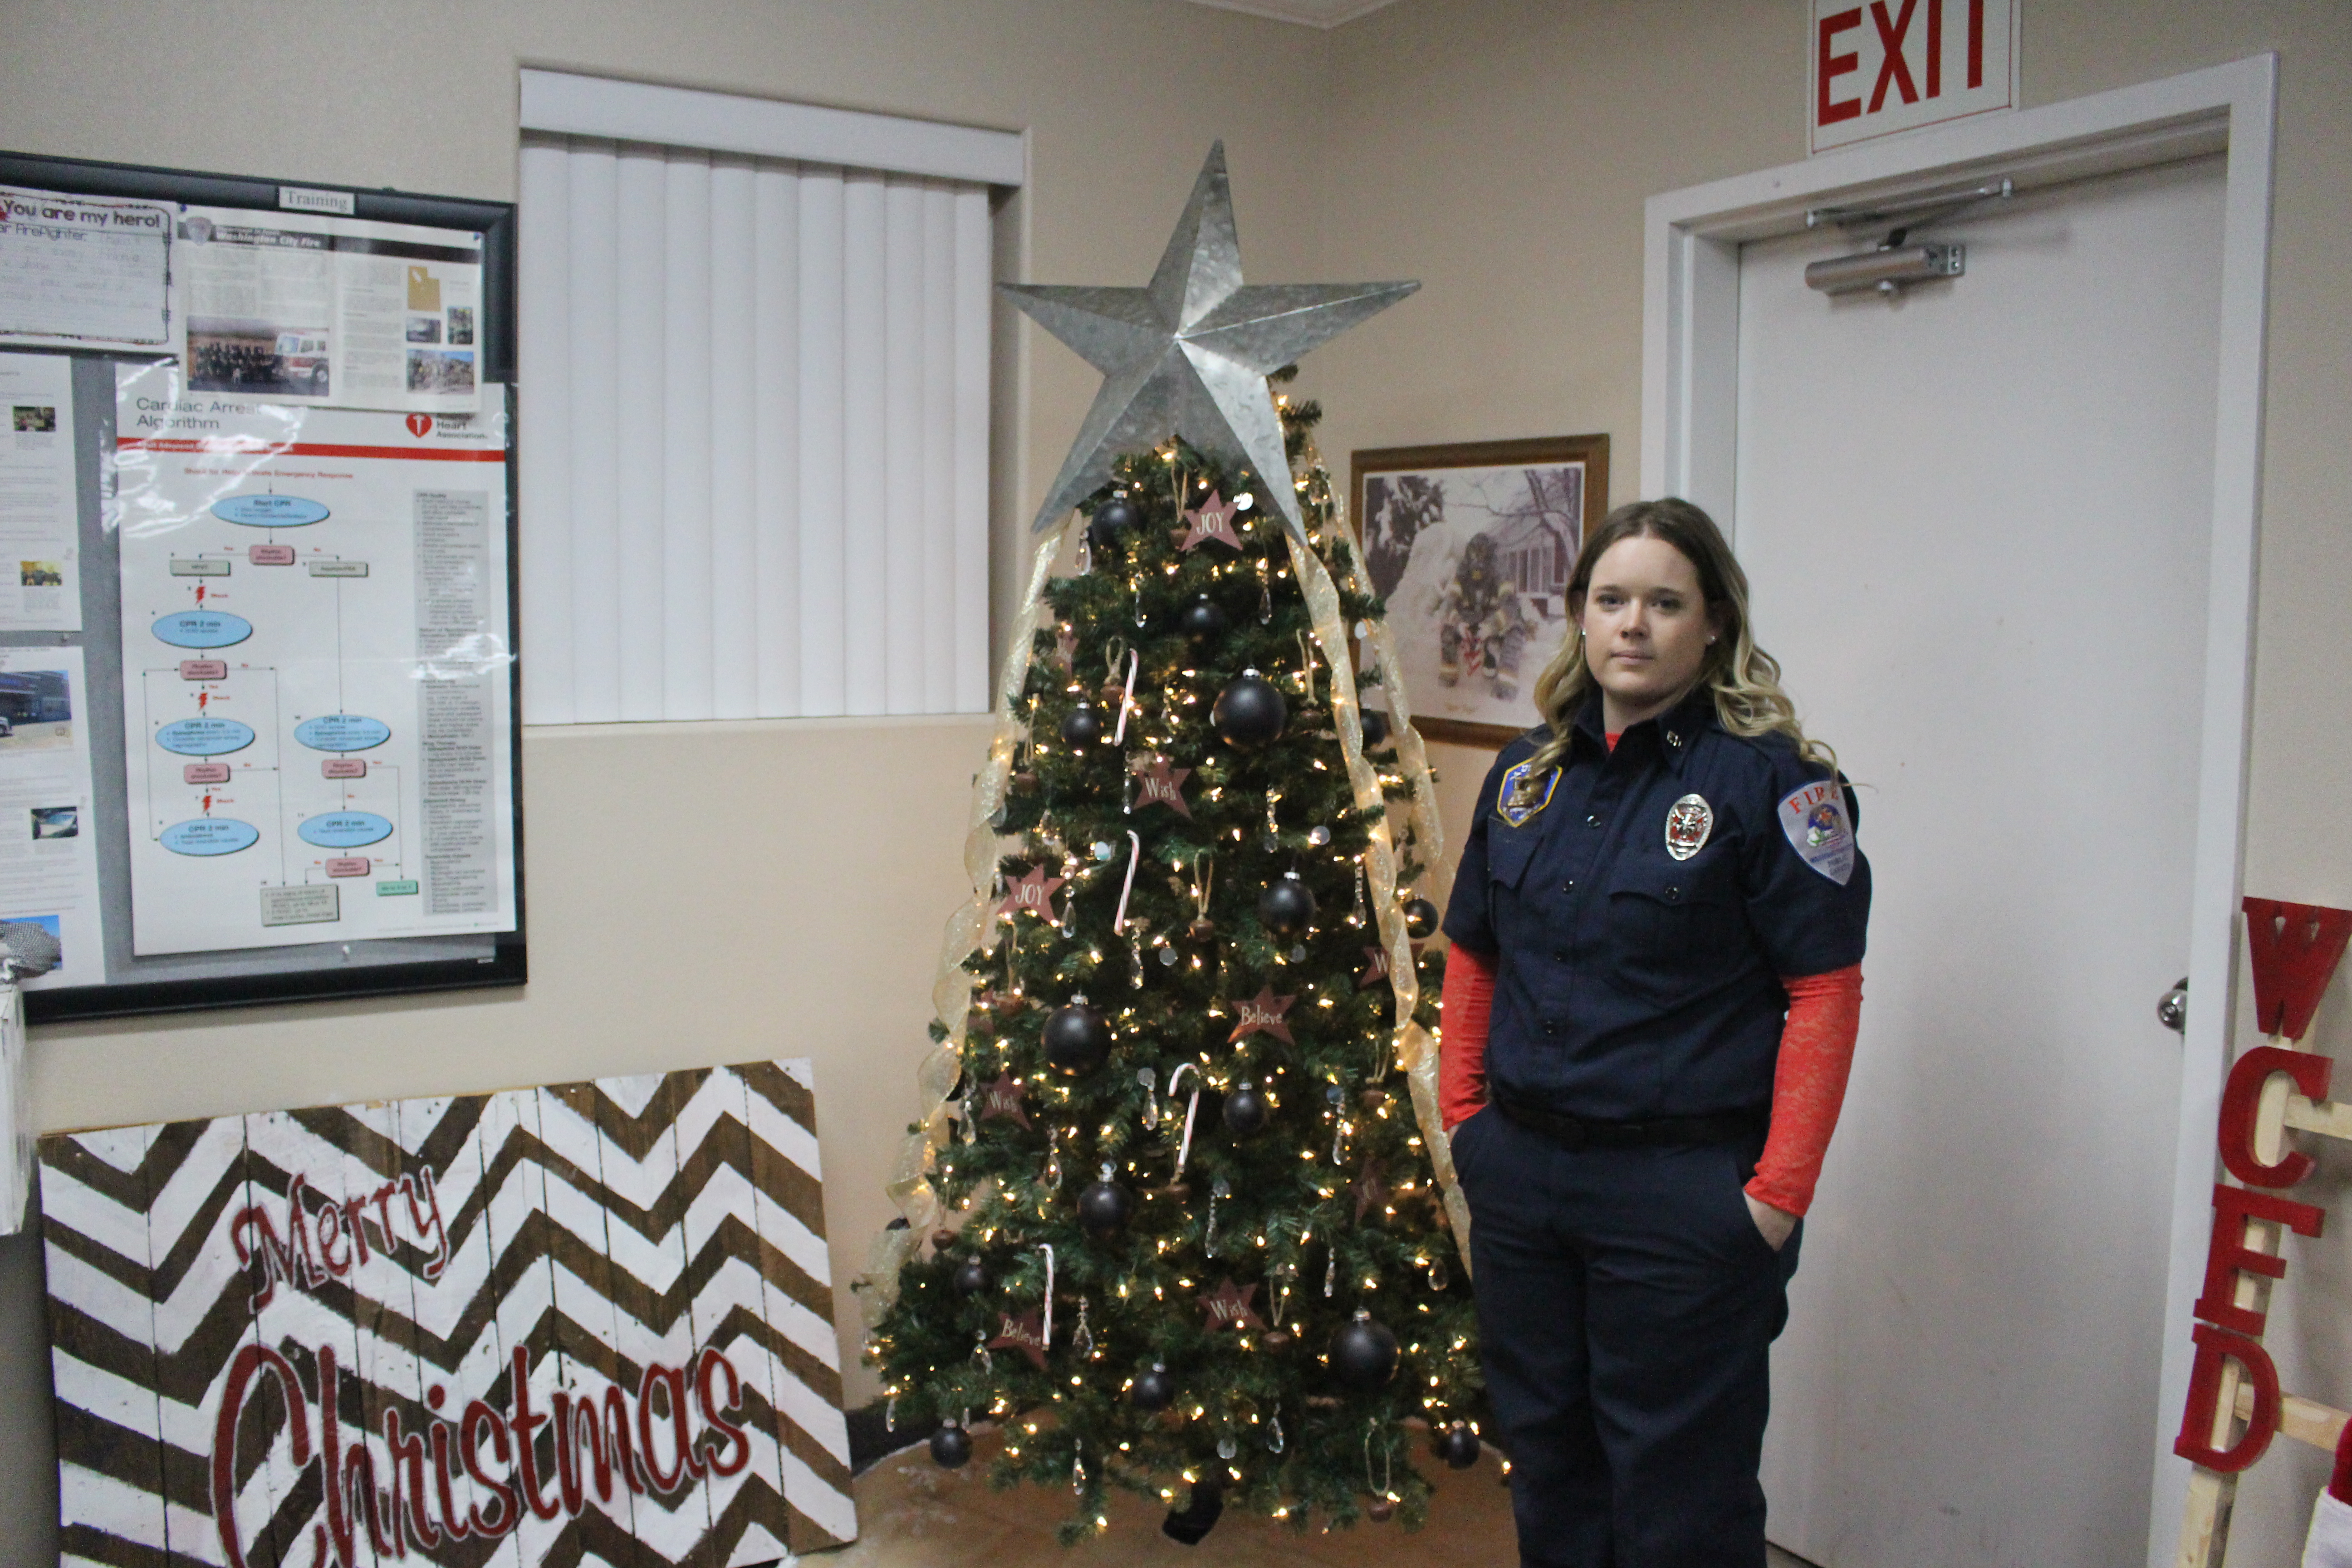 Krystle Lake stands next to one of the many Angel Trees she decorated and donated, Washington, Utah, Dec. 22, 2016 | Photo by Joseph Witham, St. George News